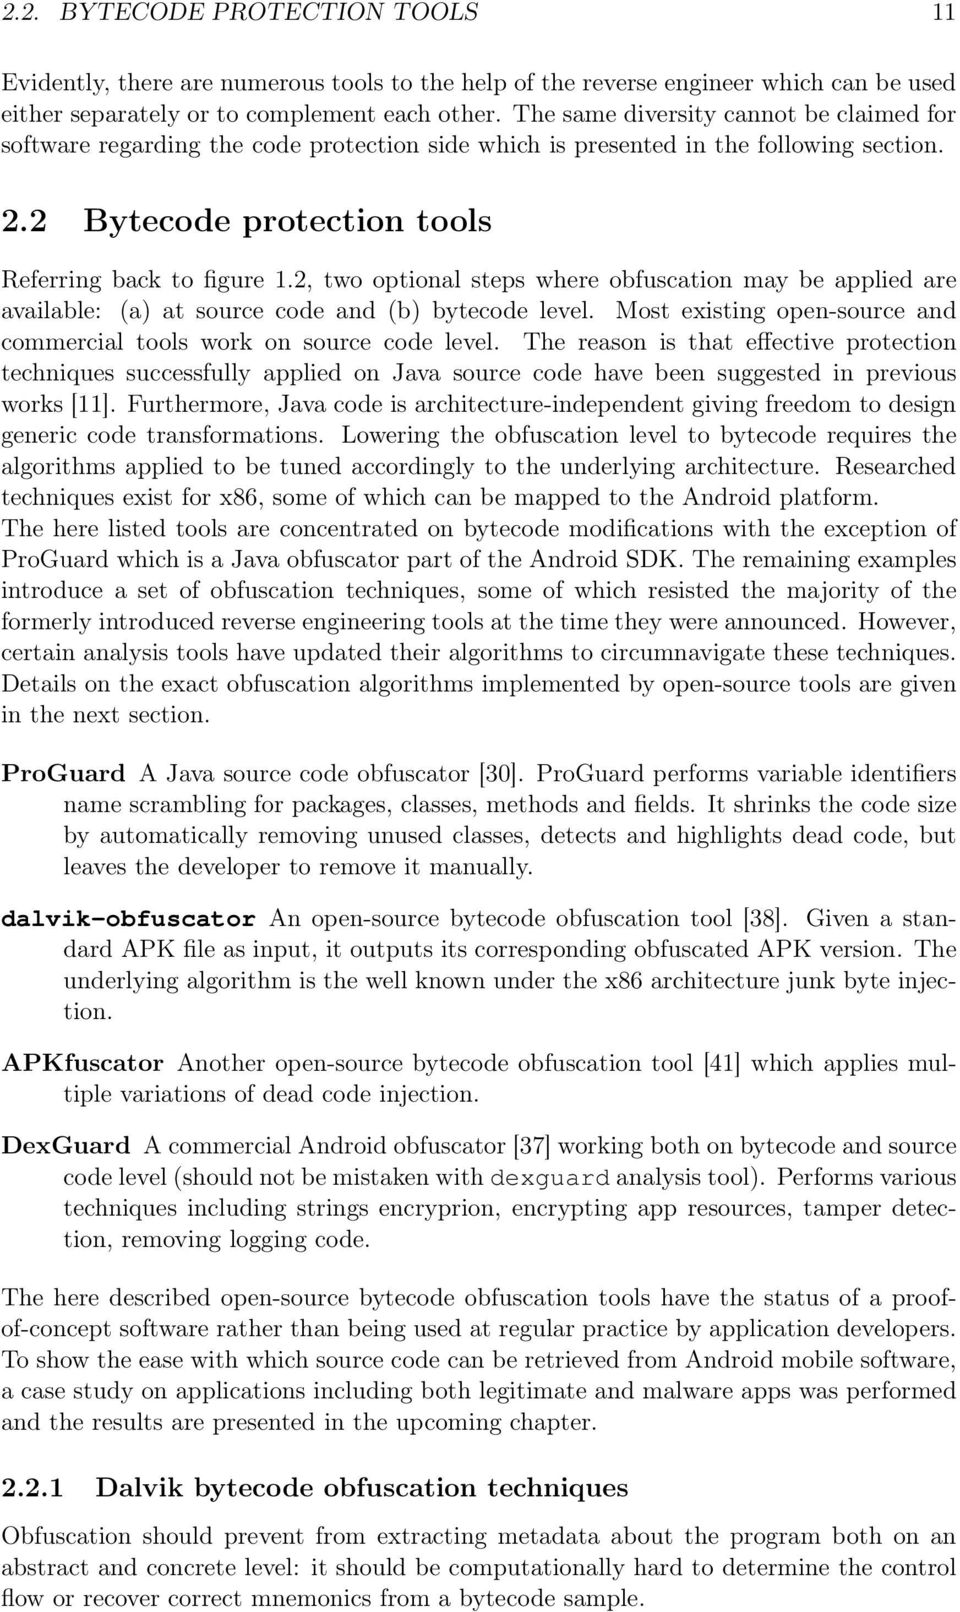 Efficient Code Obfuscation for Android - PDF